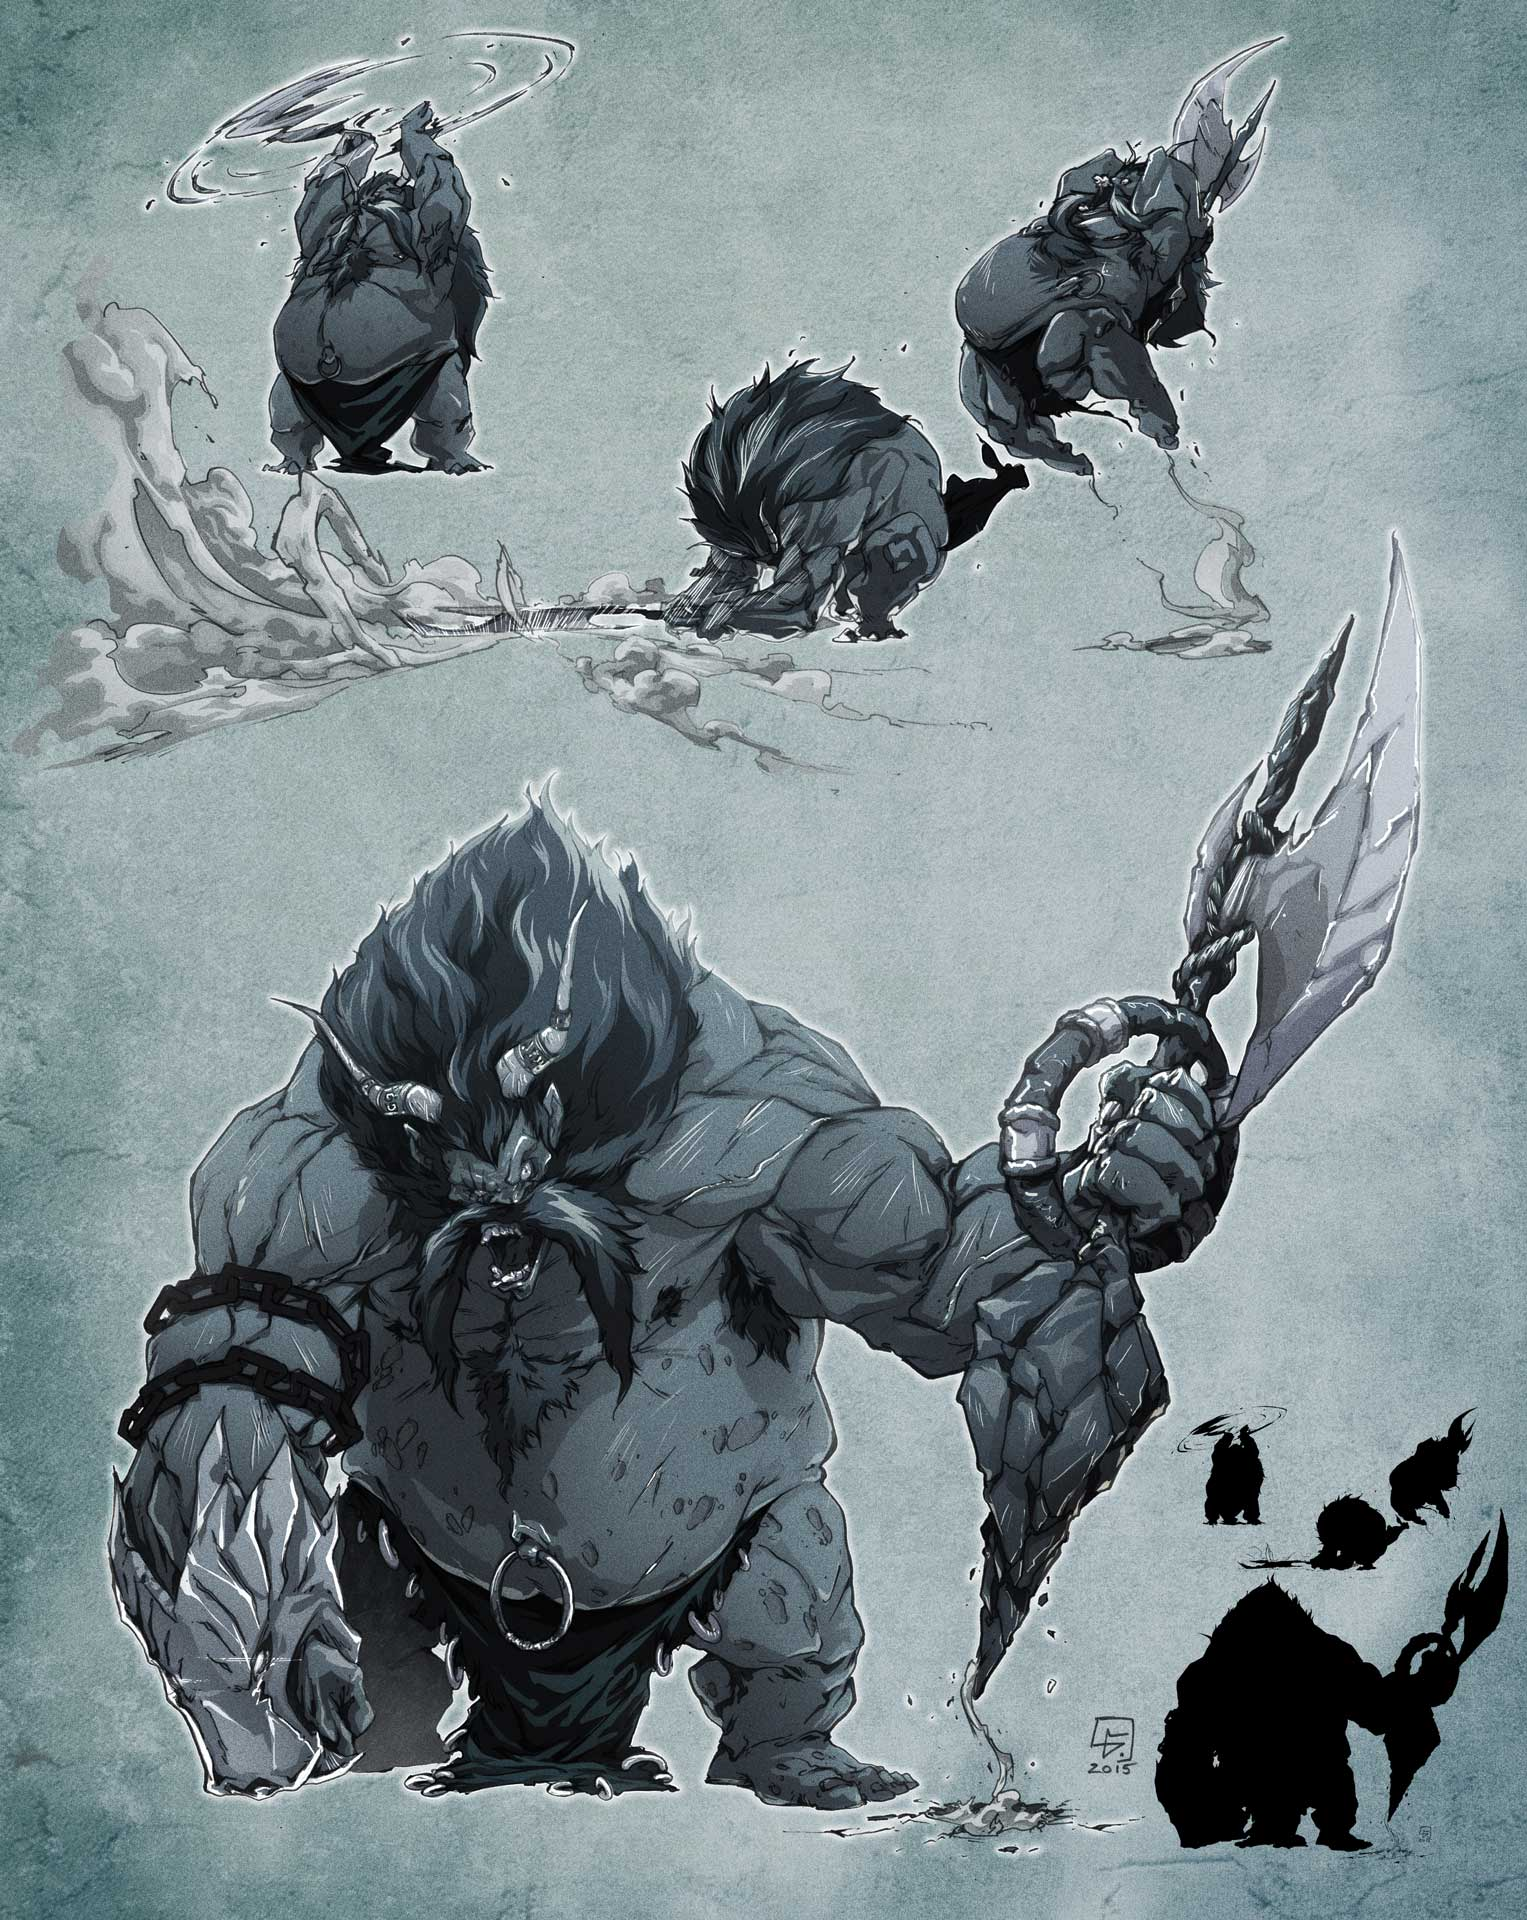 Battle-Chasers-Concept-Character-2-colors.jpg